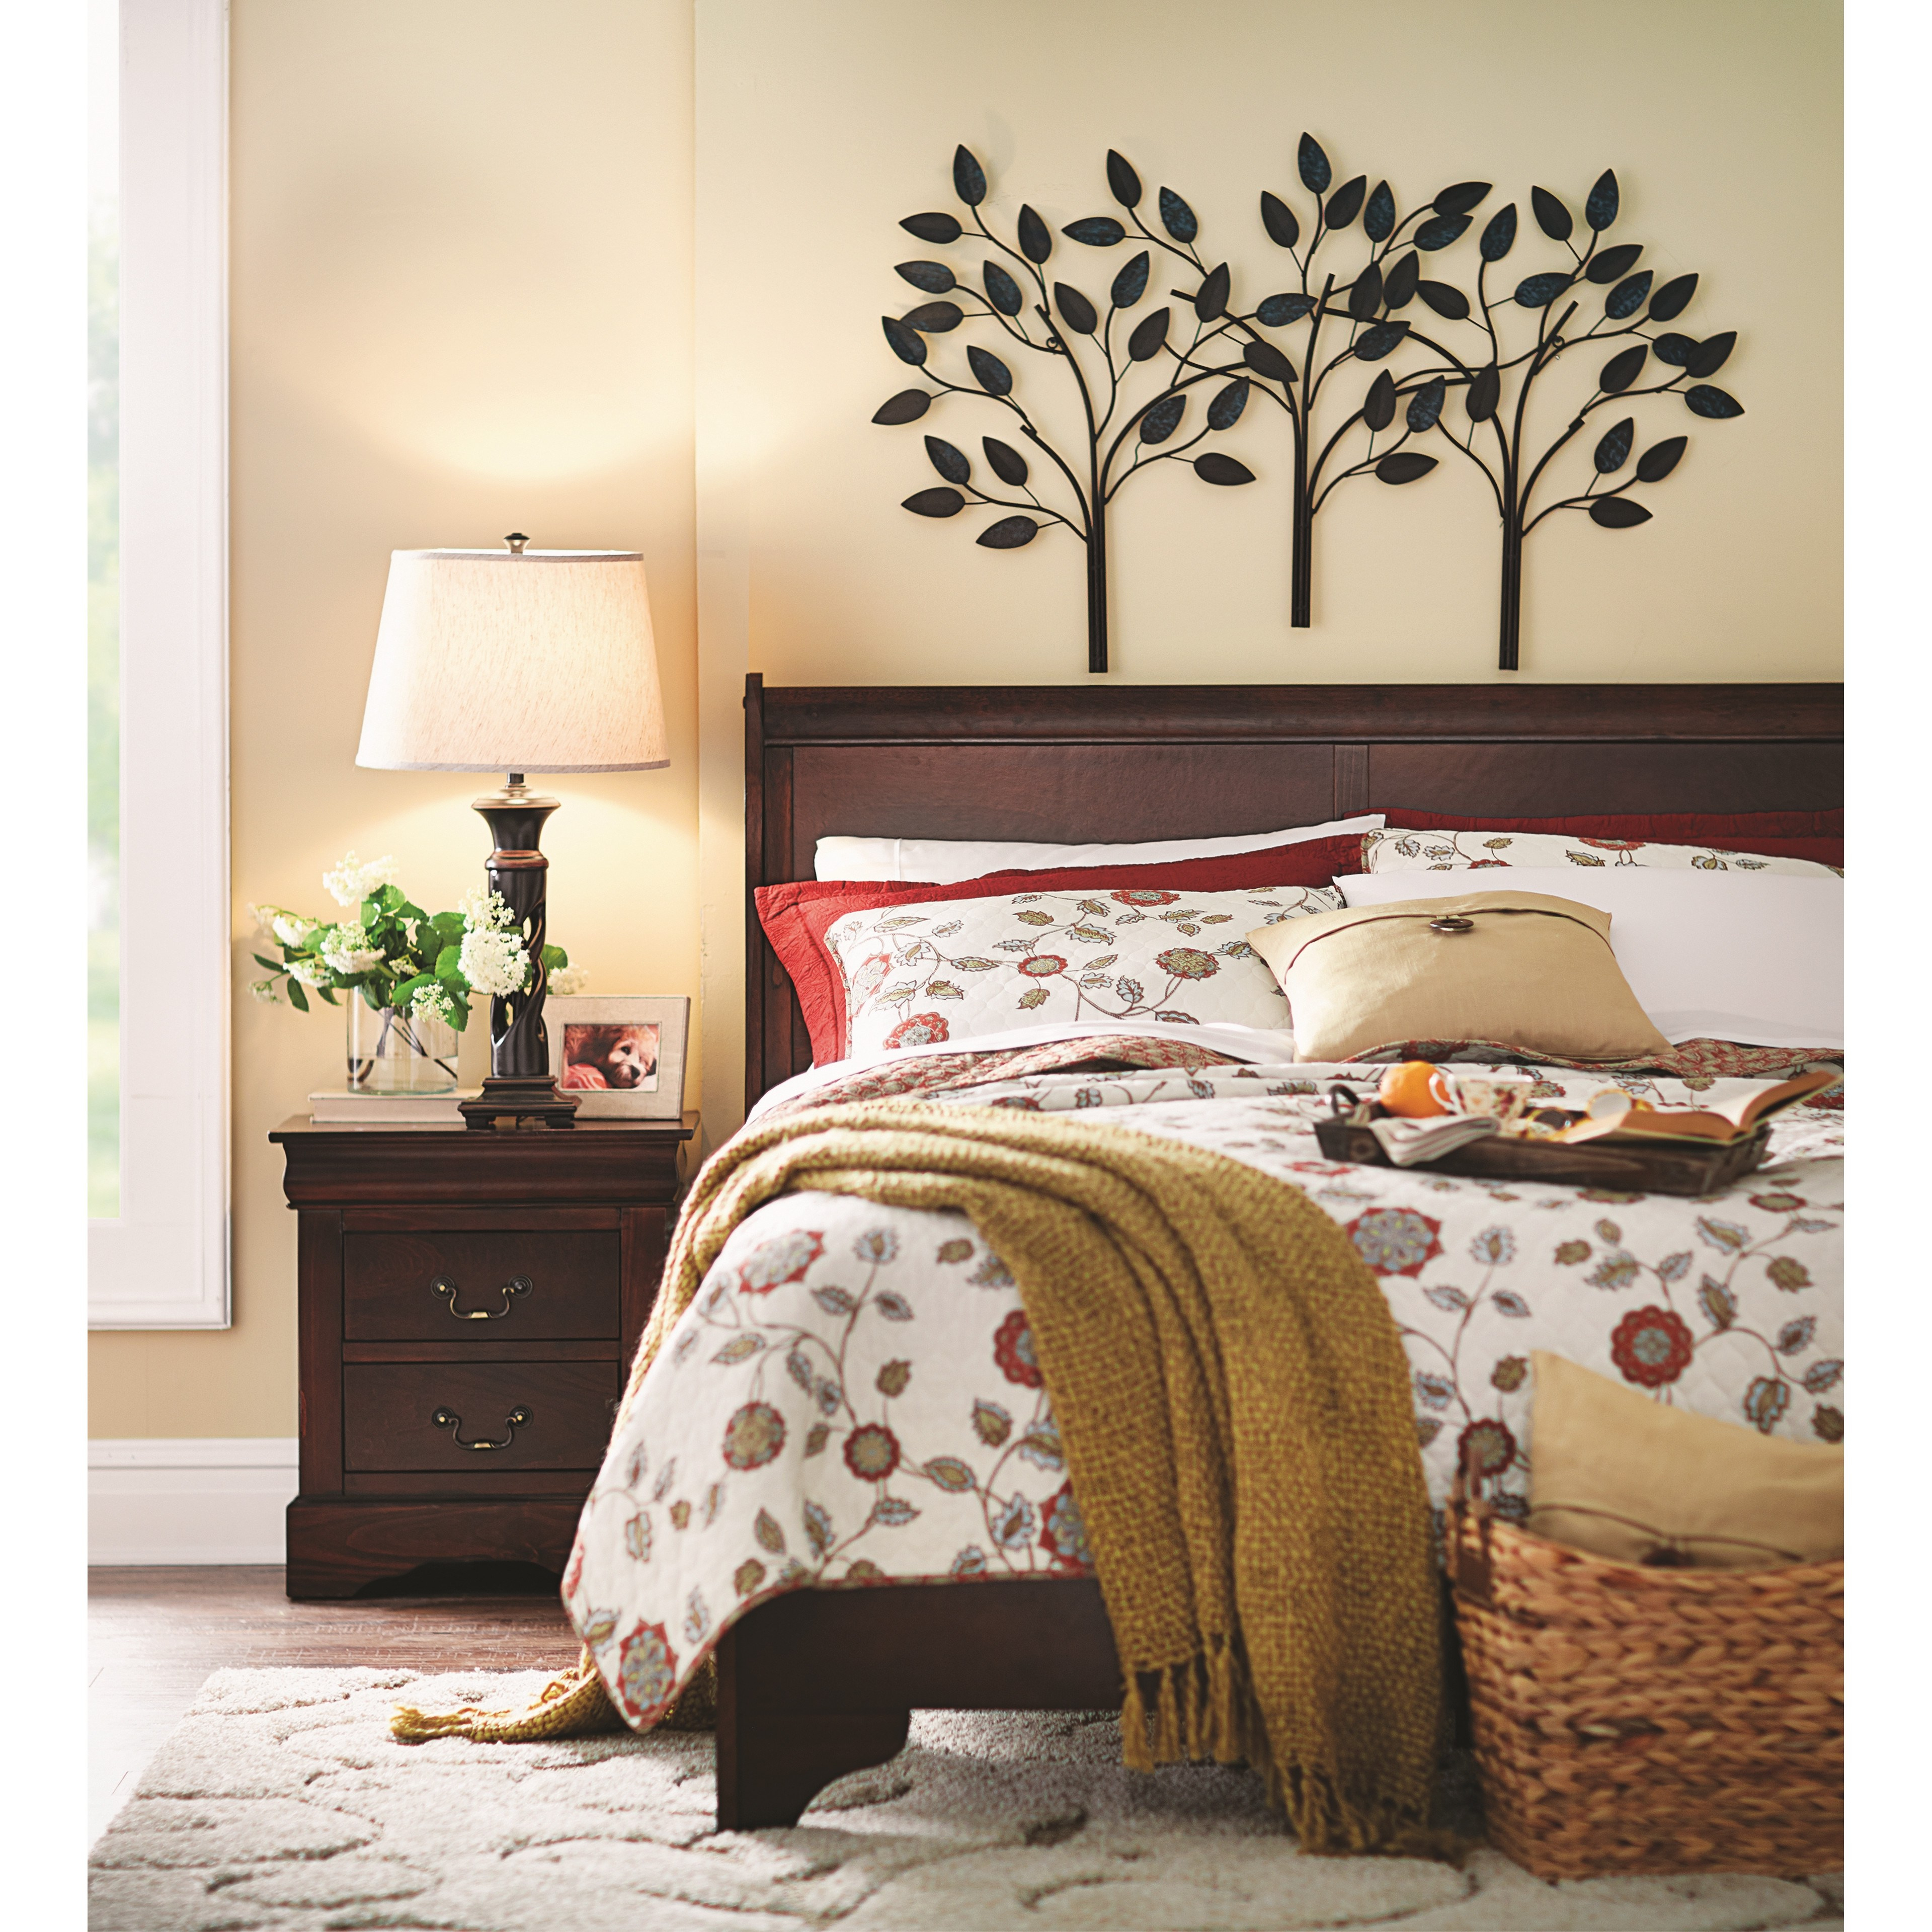 Leaves Wall Decor - Ronniebrownlifesystems throughout Desford Leaf Wall Decor (Image 21 of 30)